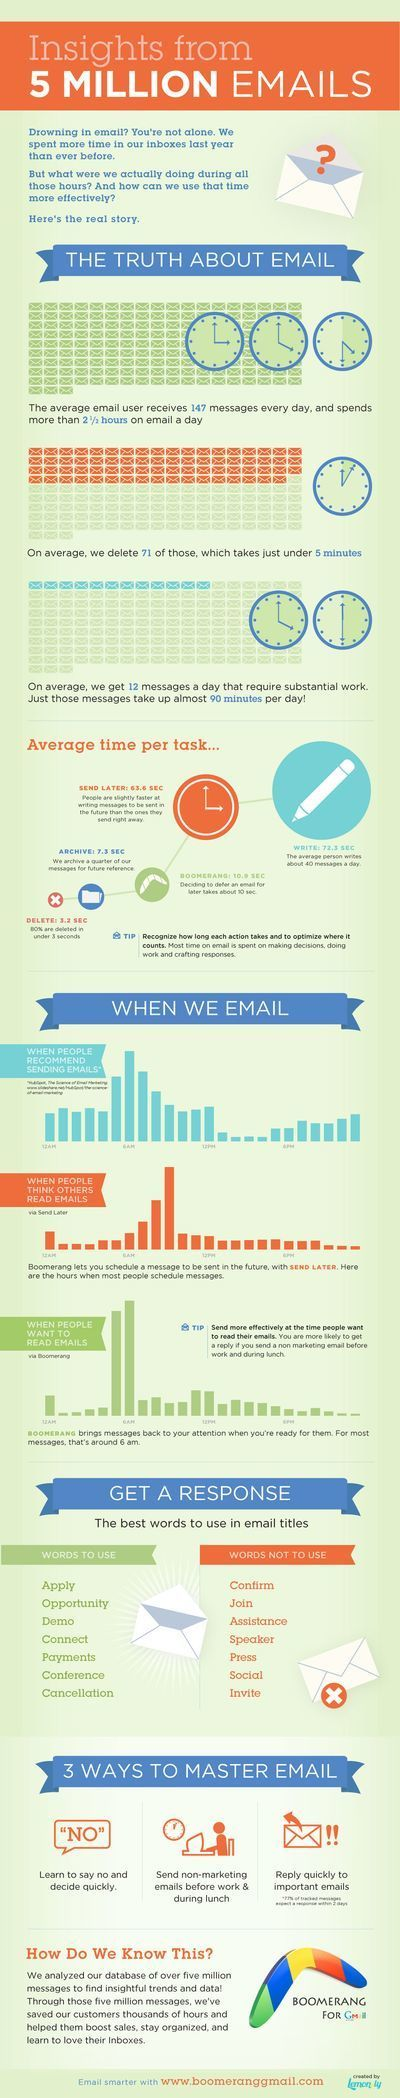 Trends And Behaviors For Effective Email Marketing | Best Practices For Email Marketing And Affiliate Marketing | Scoop.it